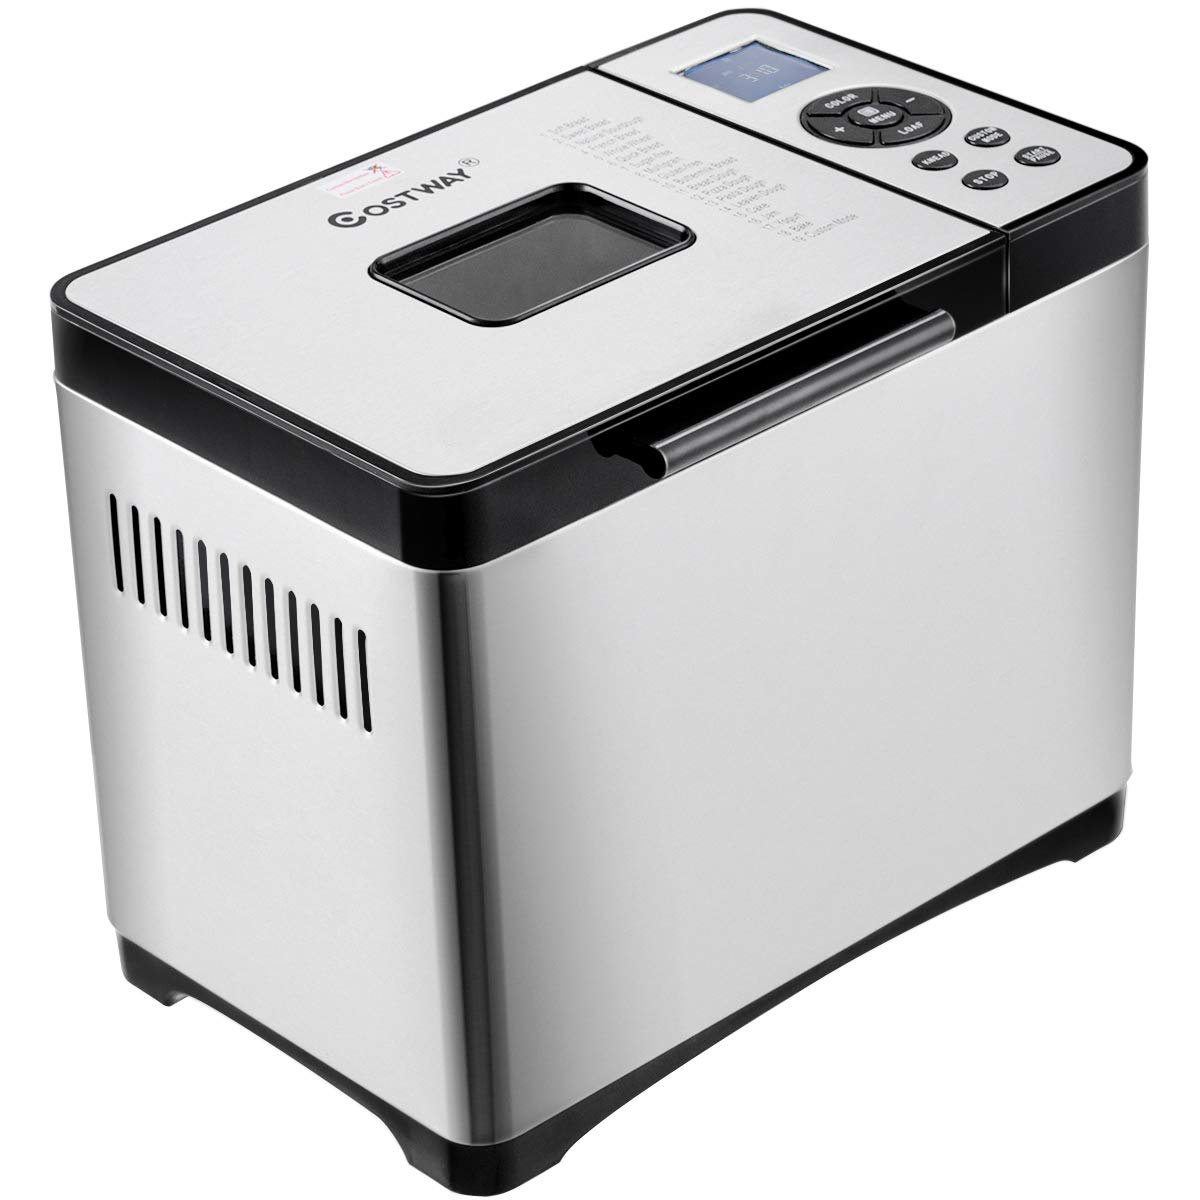 COSTWAY Automatic Bread Maker Stainless Steel Programmable Multifunctional Bread Machine with 15 Programs, 3 Loaf Sizes, 3 Crust Colors, 15 Hours Delay Timer, 1 Hour Keep Warm (15 Programs 600W) 23592-CYPE